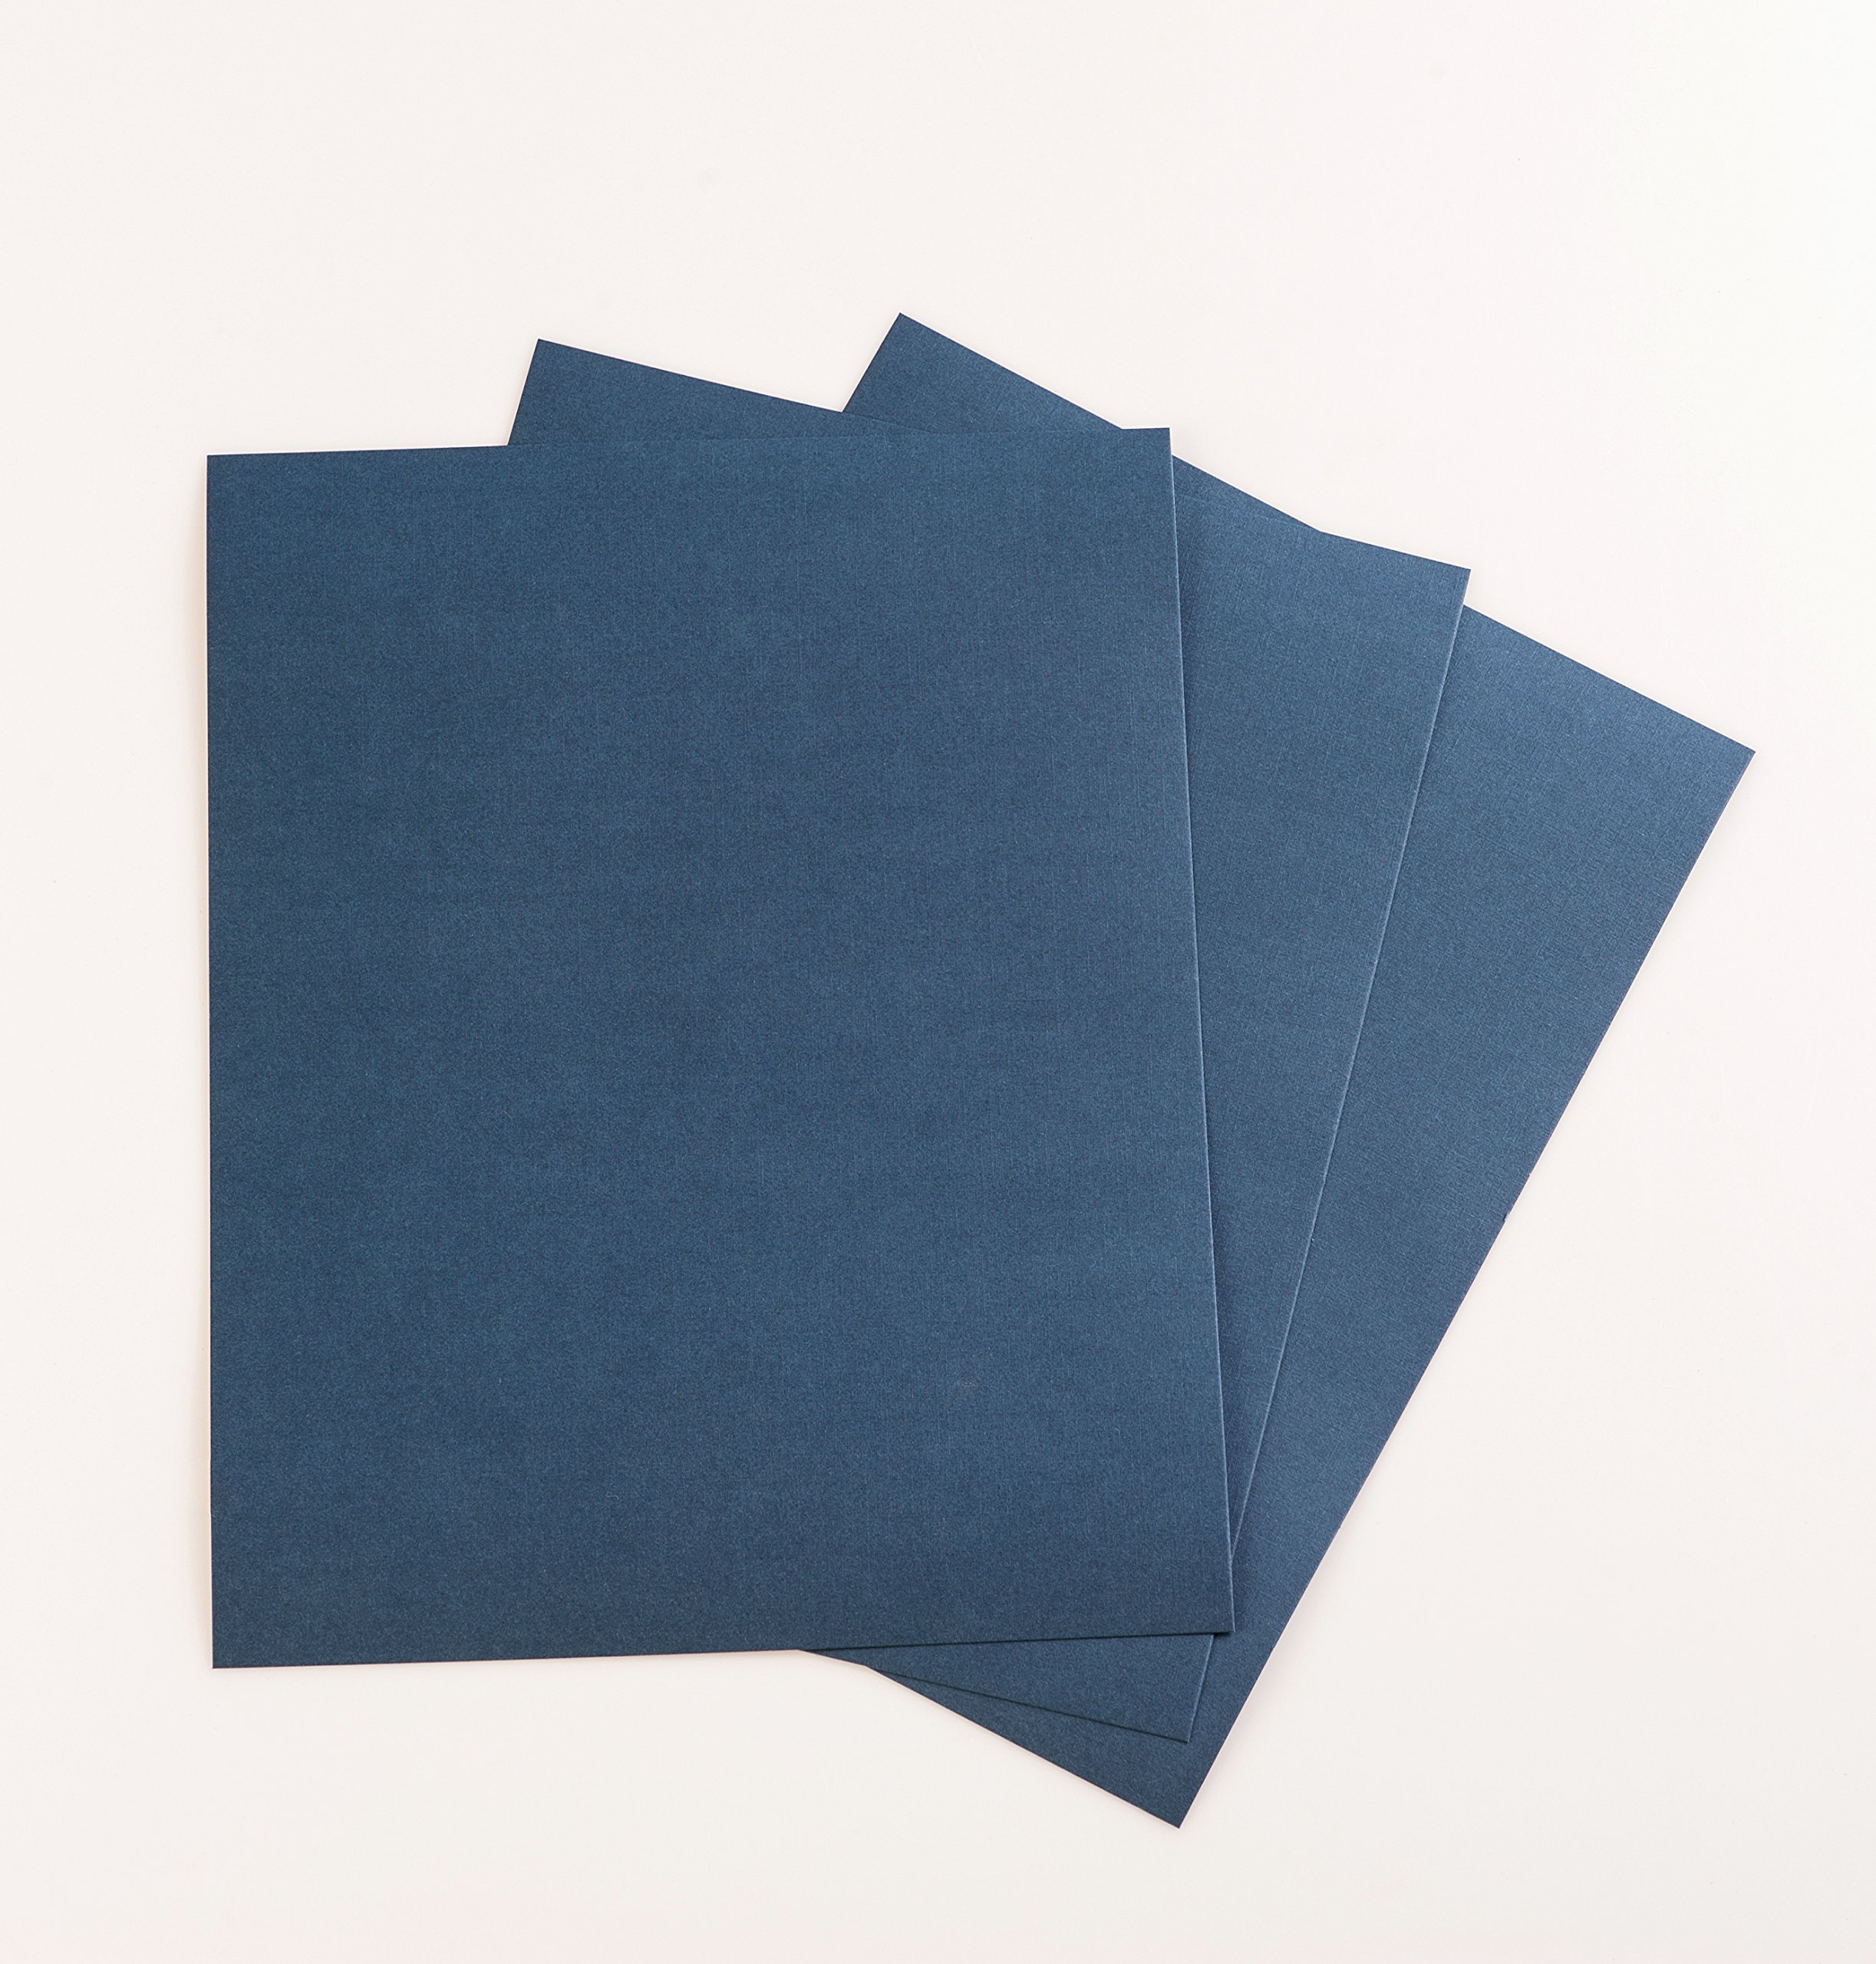 BNC Letter Size Linen Texture Presentation Covers Navy Blue Pack of 100 by BNC Office Supply (Image #2)